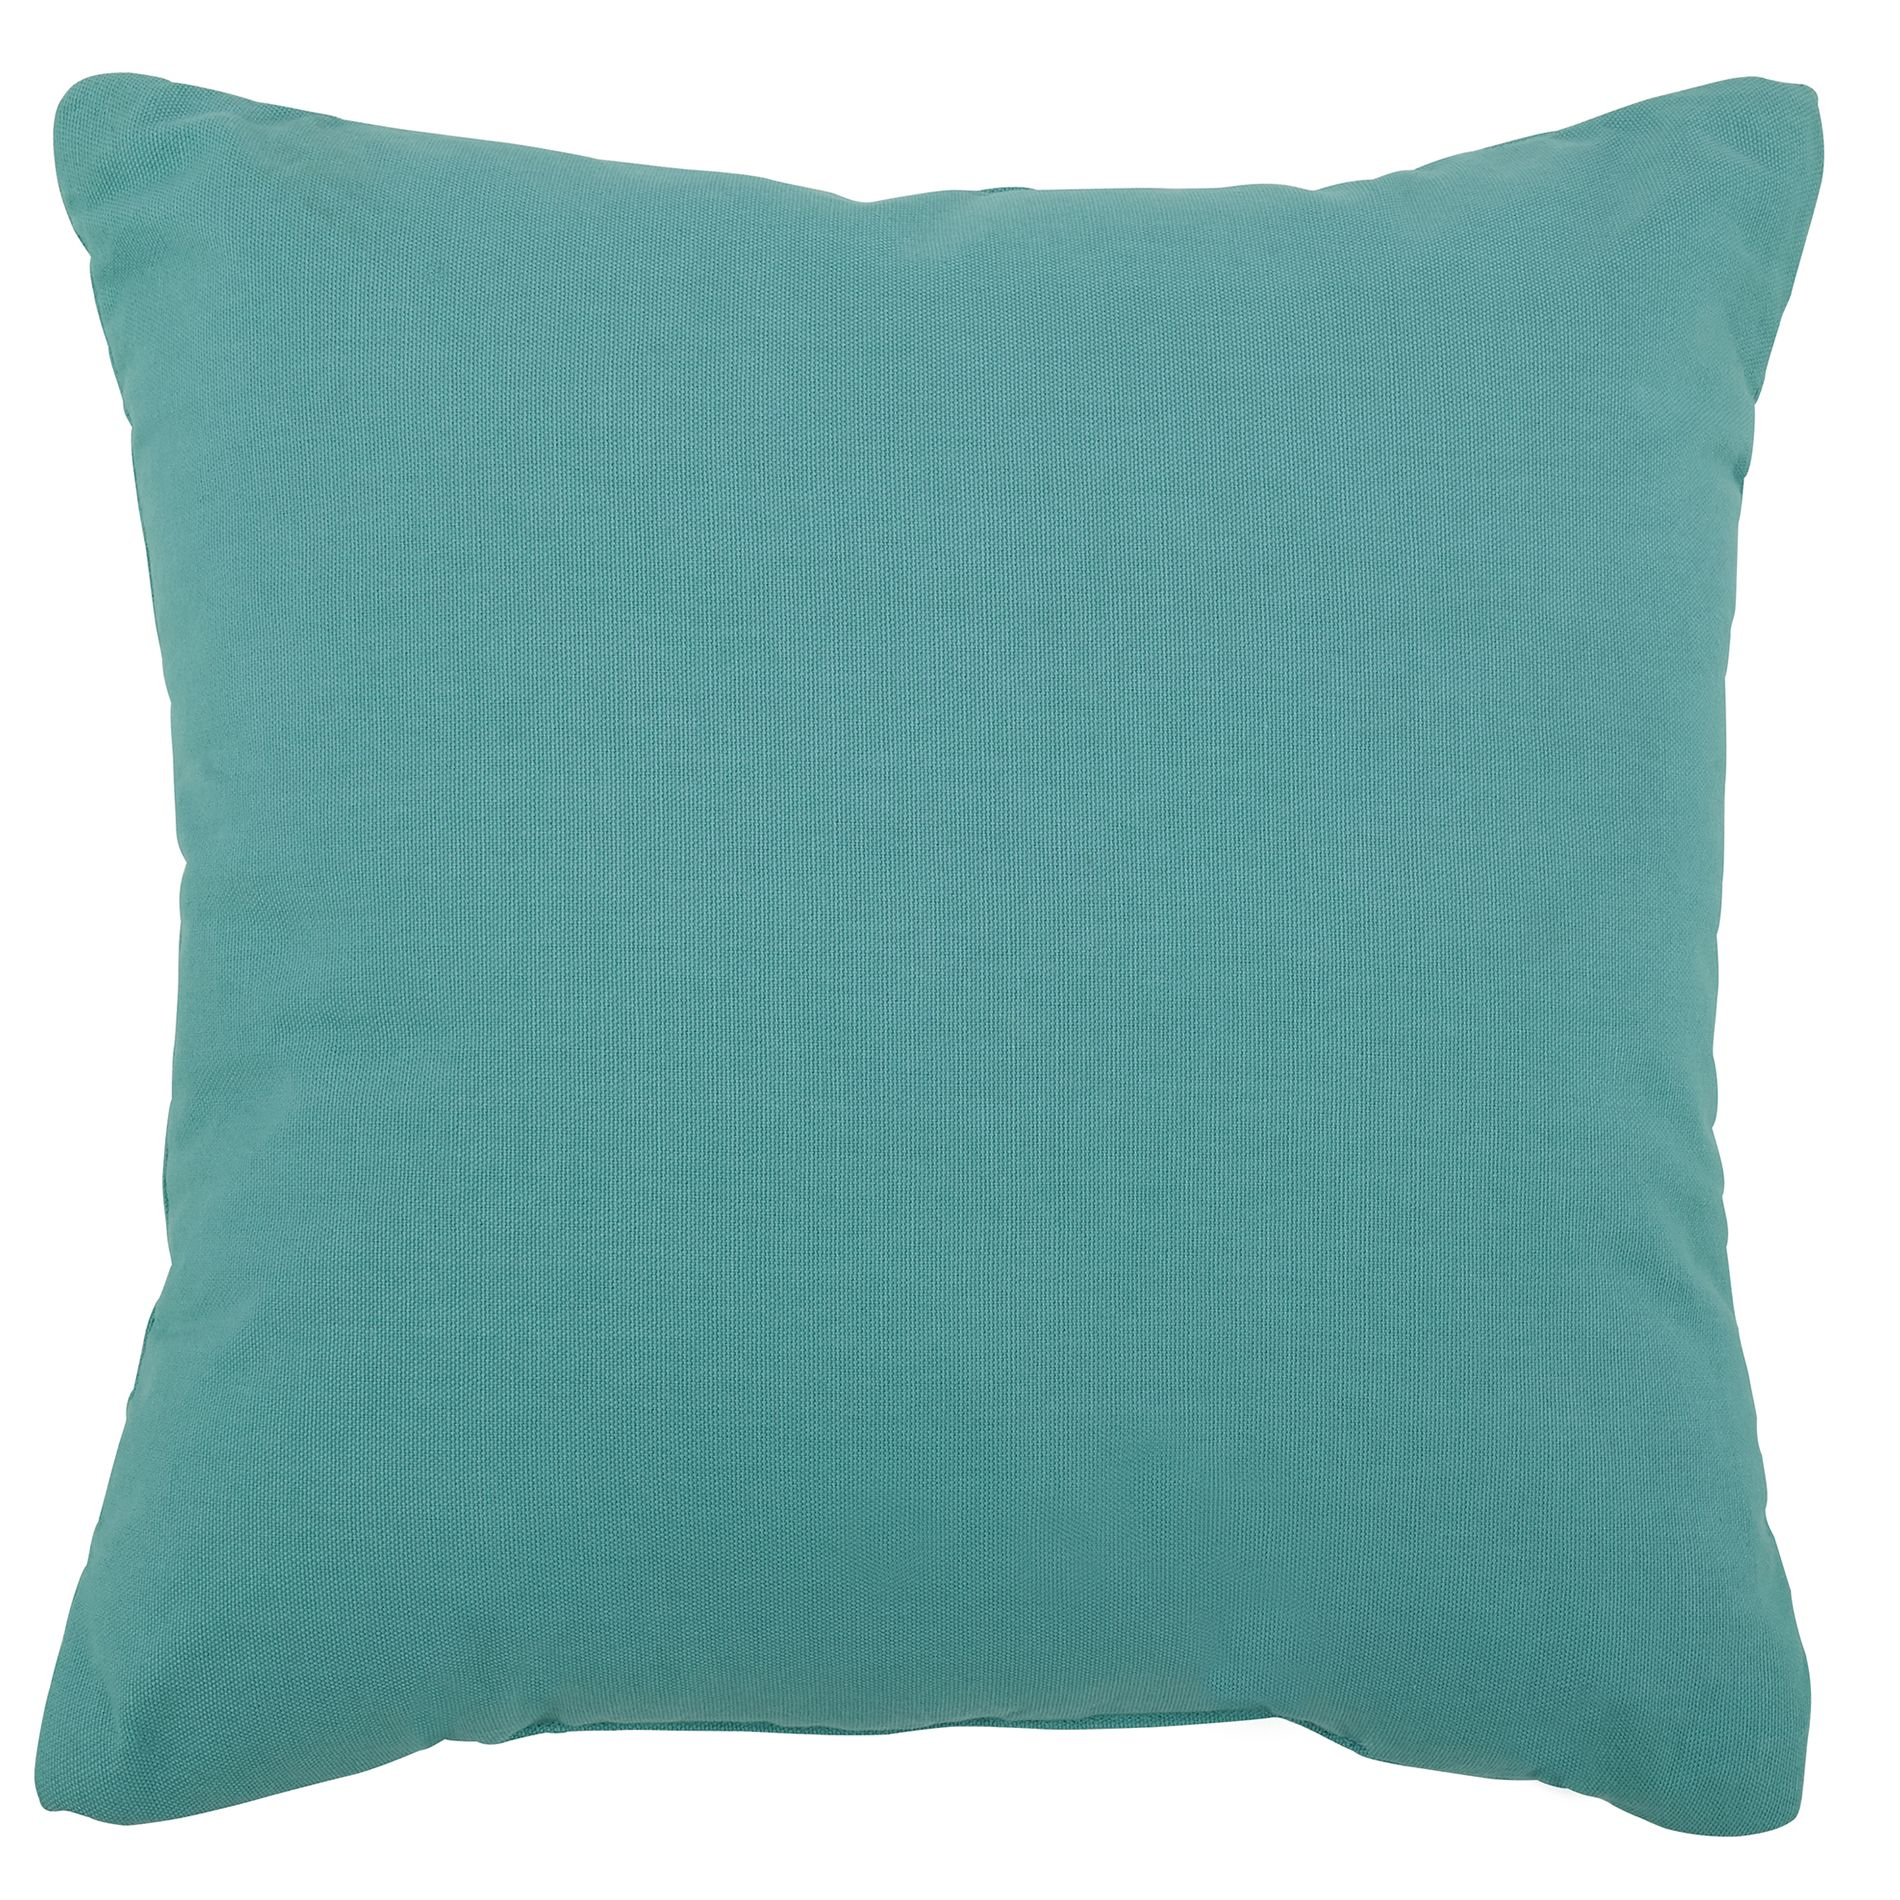 Sutton Rowe Outdoor Pillow Virdian Green Pillows Outdoor